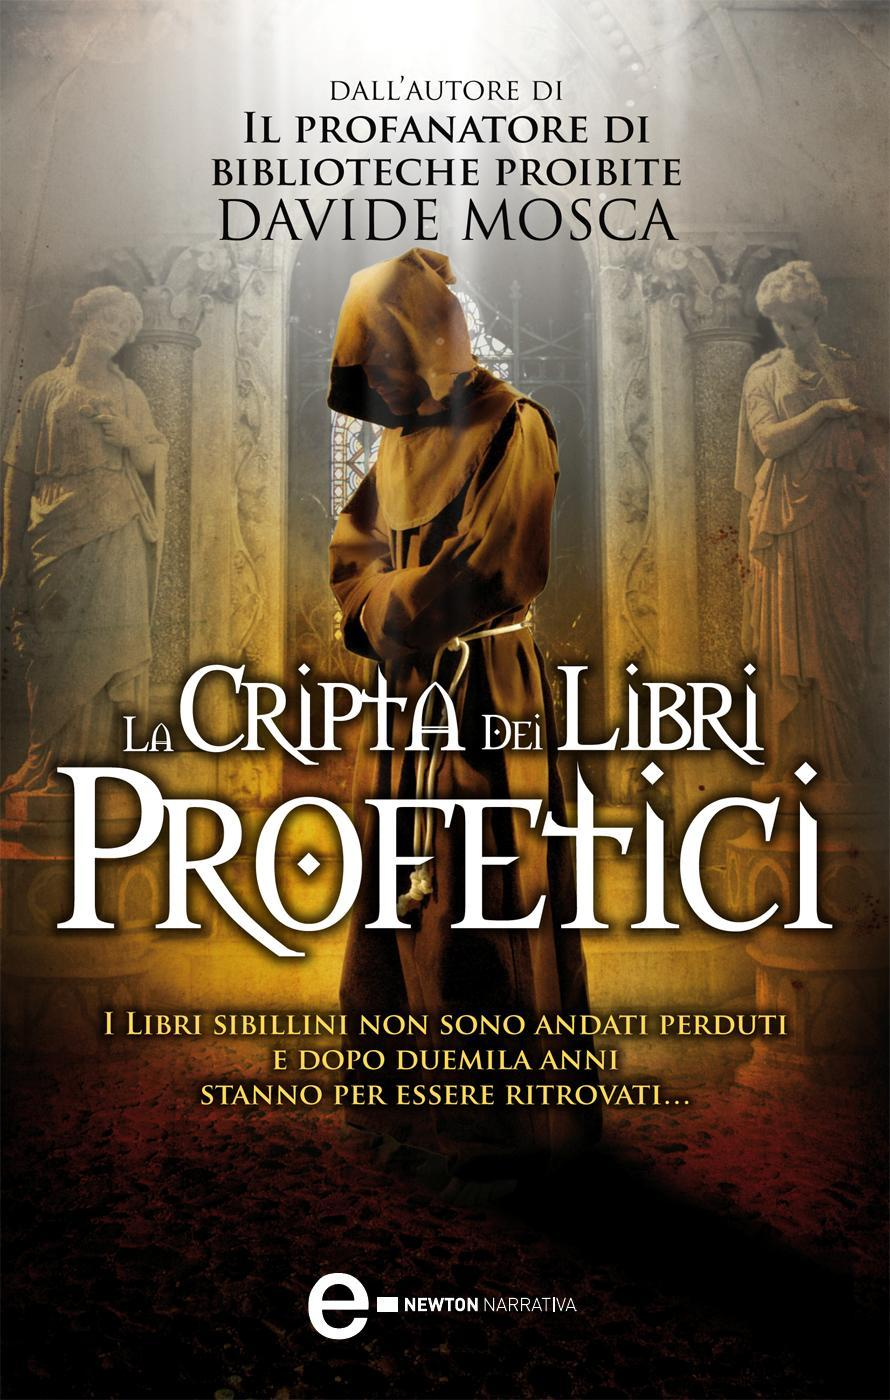 Davide Mosca - La cripta dei libri profetici free download